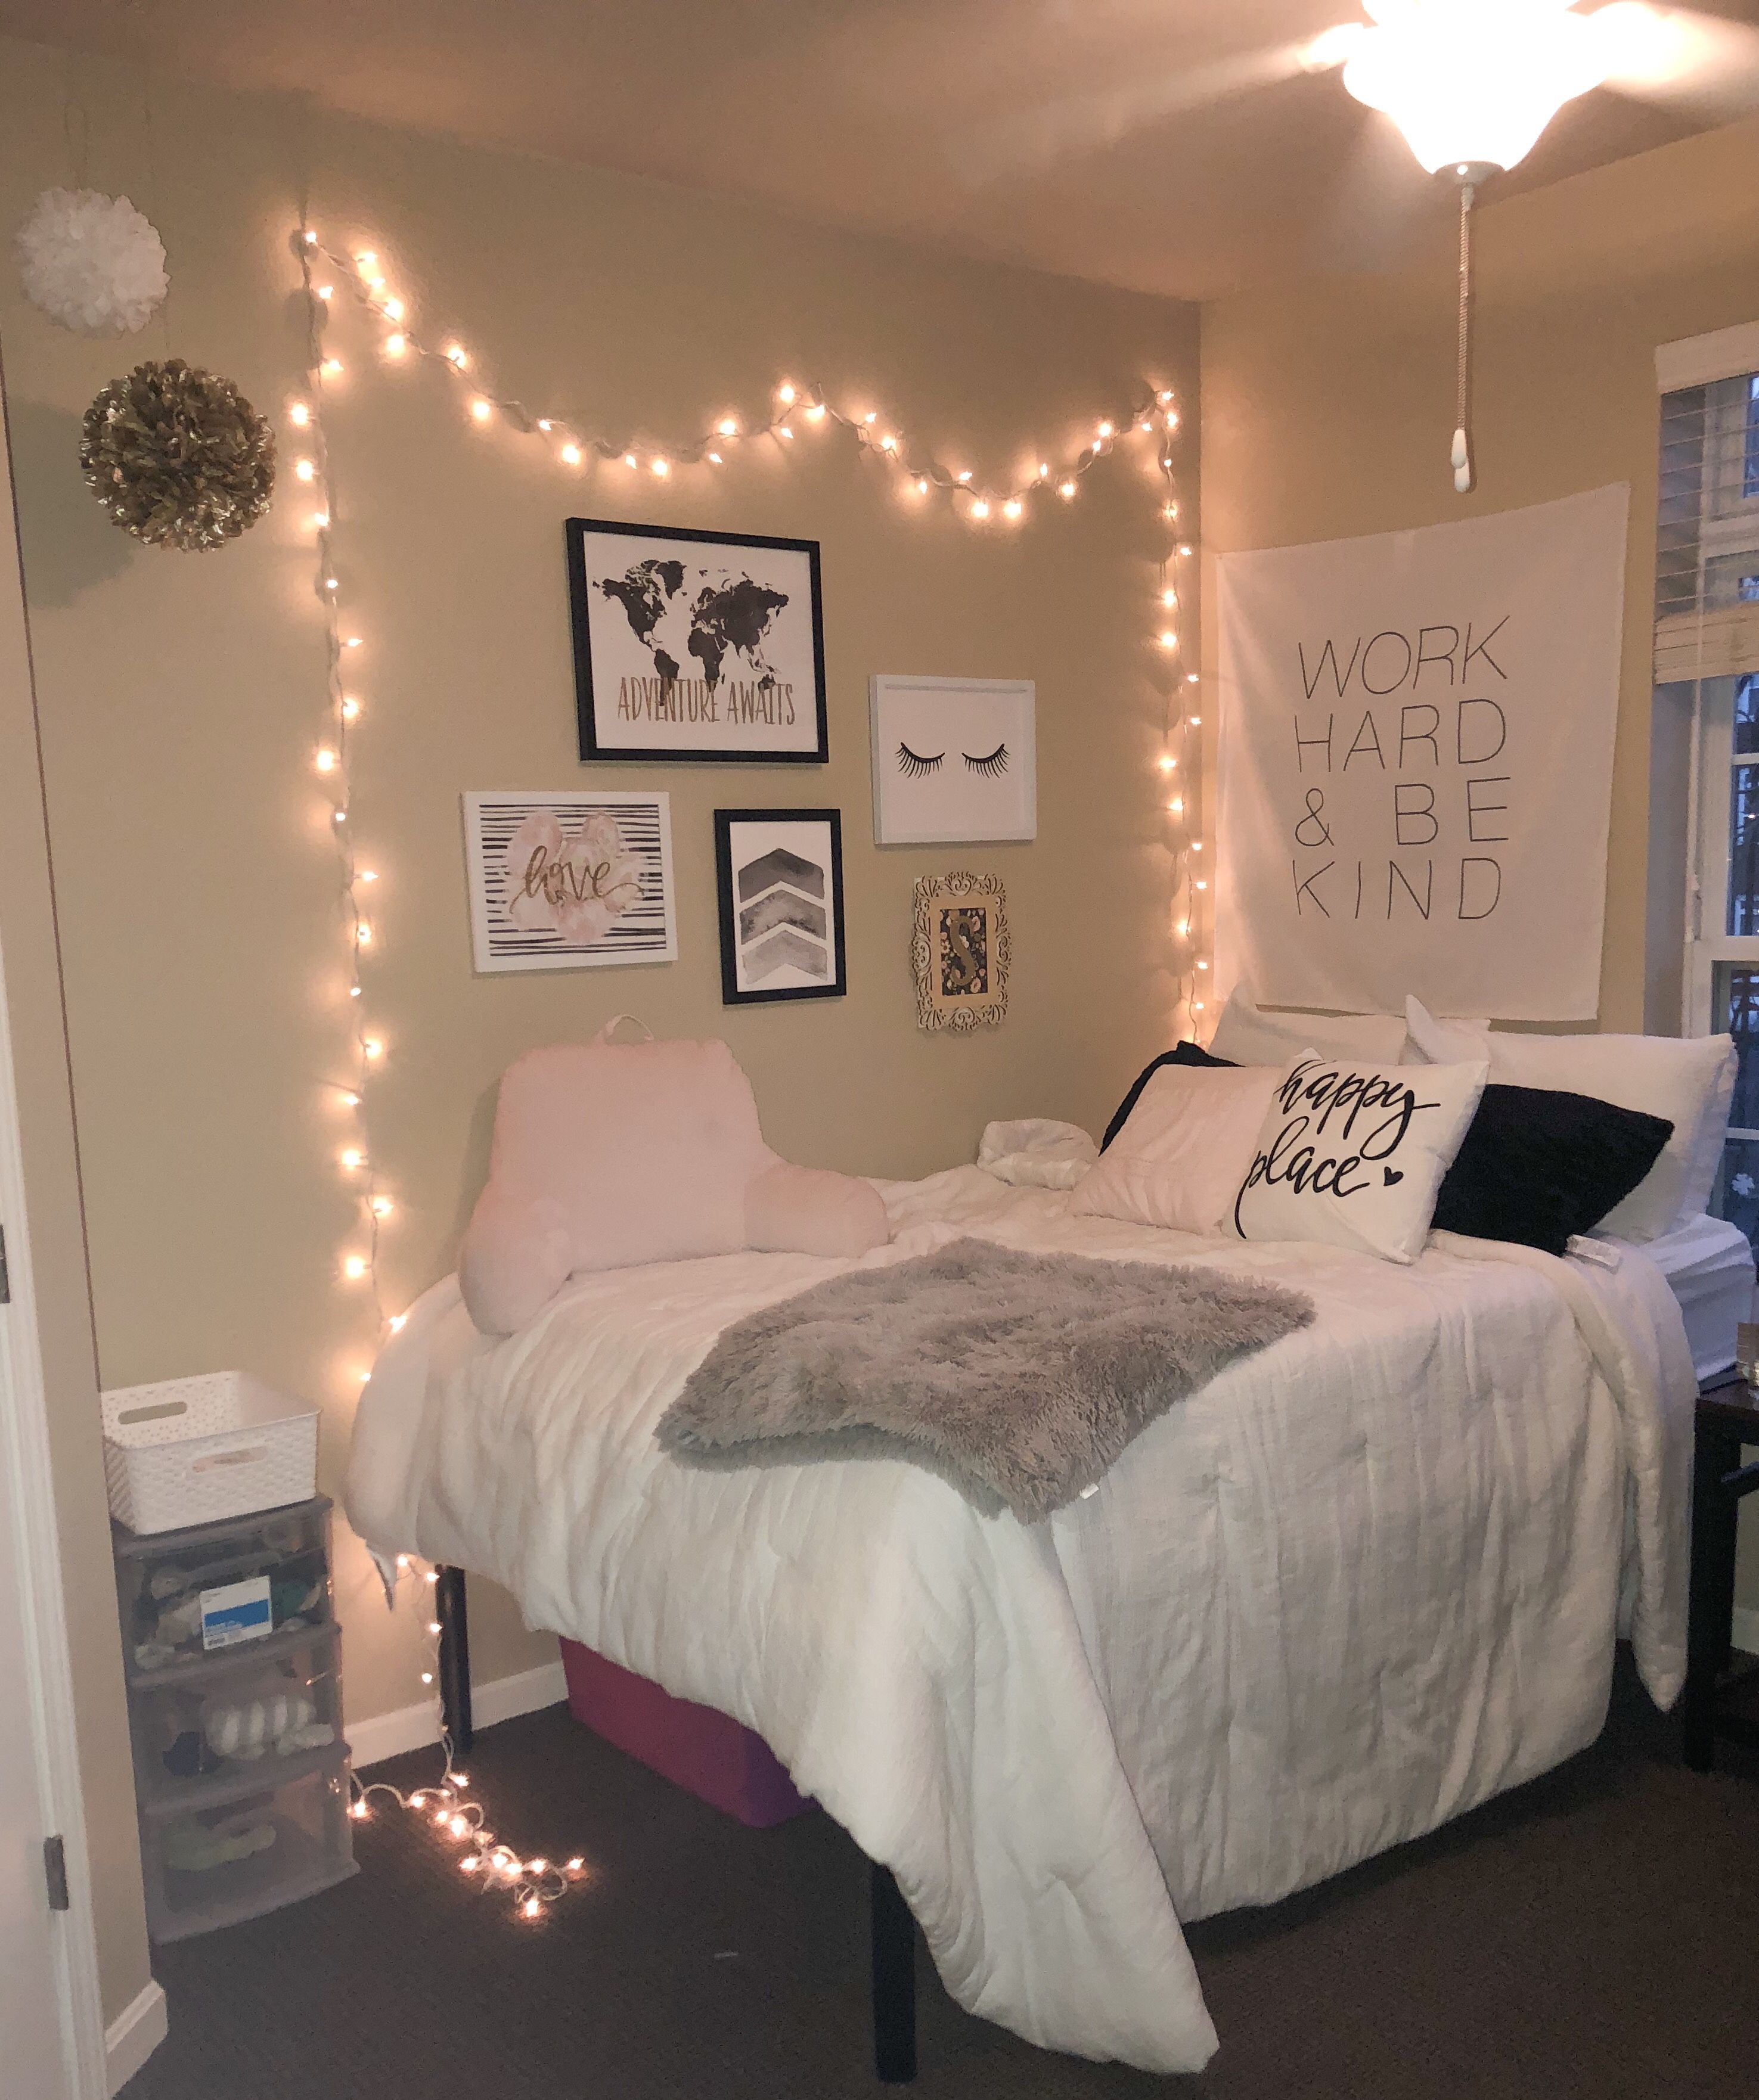 Pin By Marisol Guerrero On College Small Room Bedroom Bedroom Decor Small Room Design